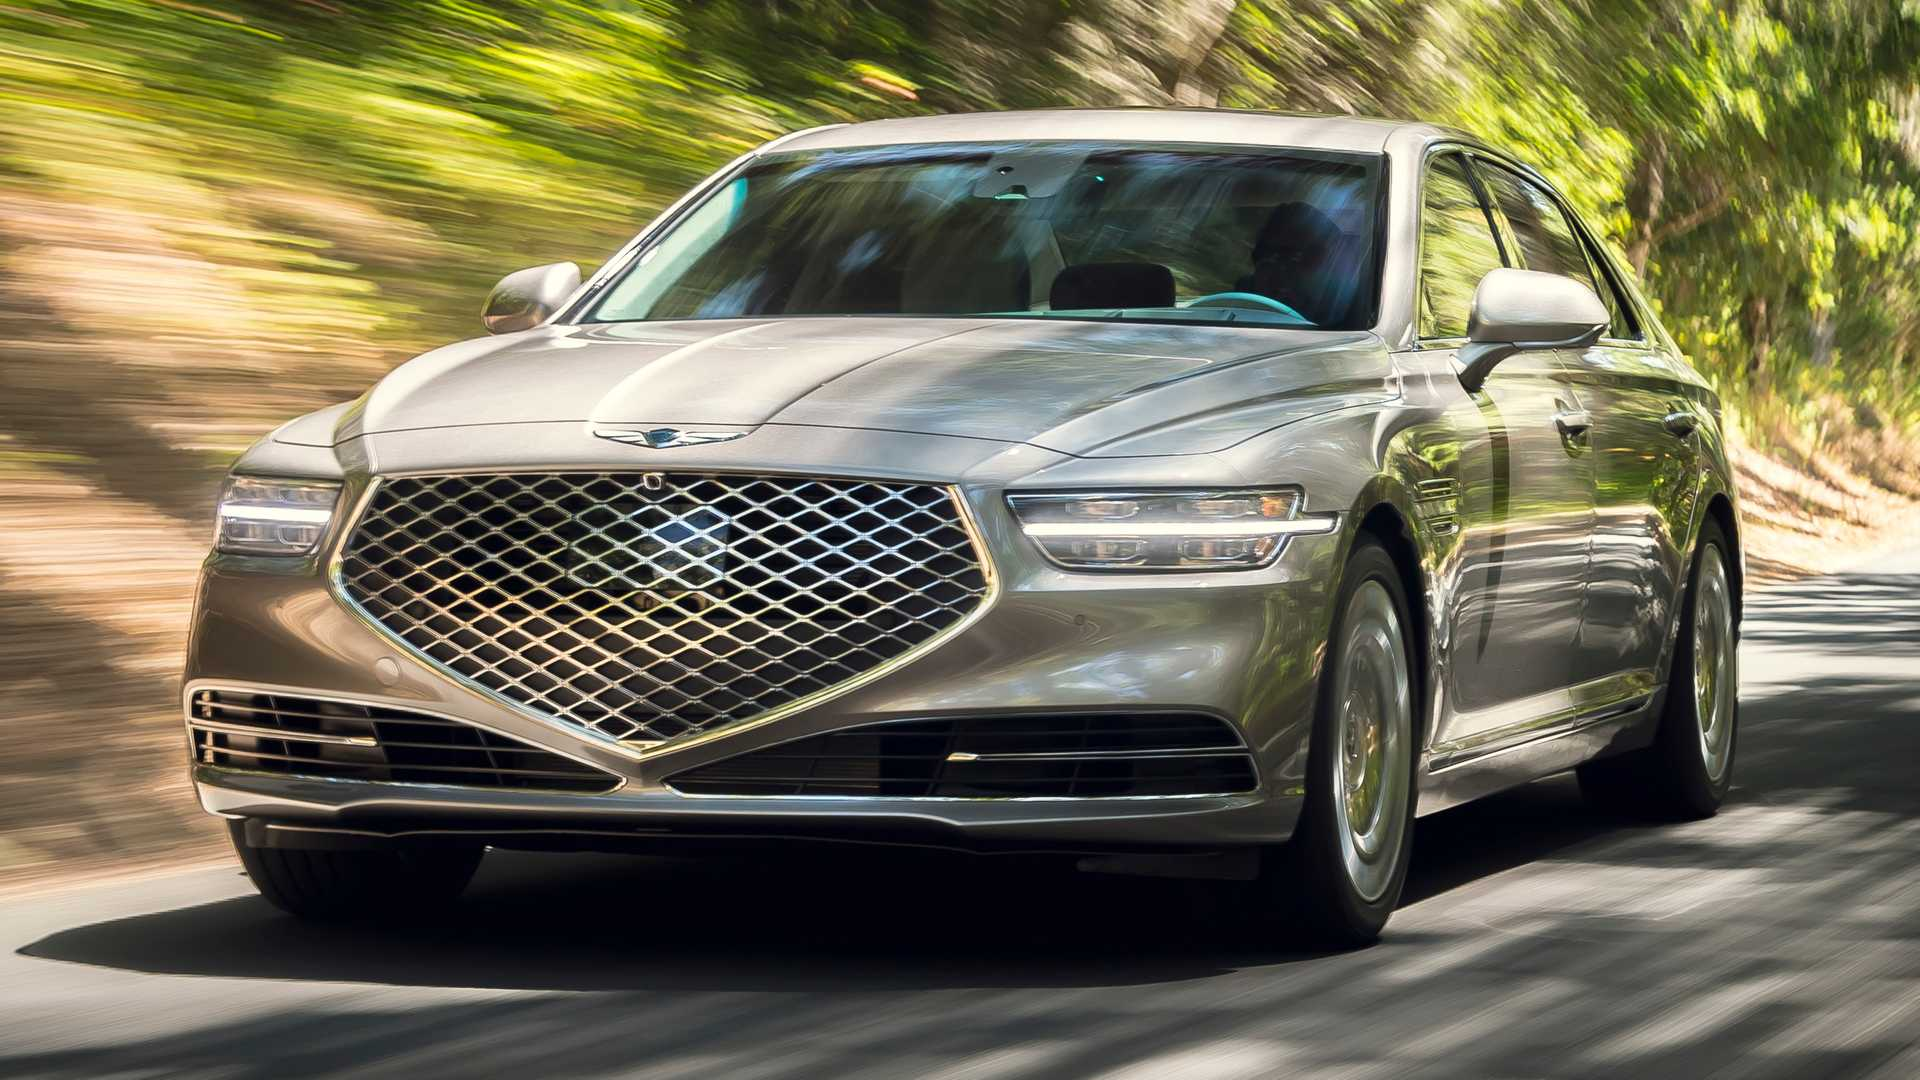 2020 Los Angeles Auto Show.2020 Genesis G90 Brings Its Major Facelift To Los Angeles